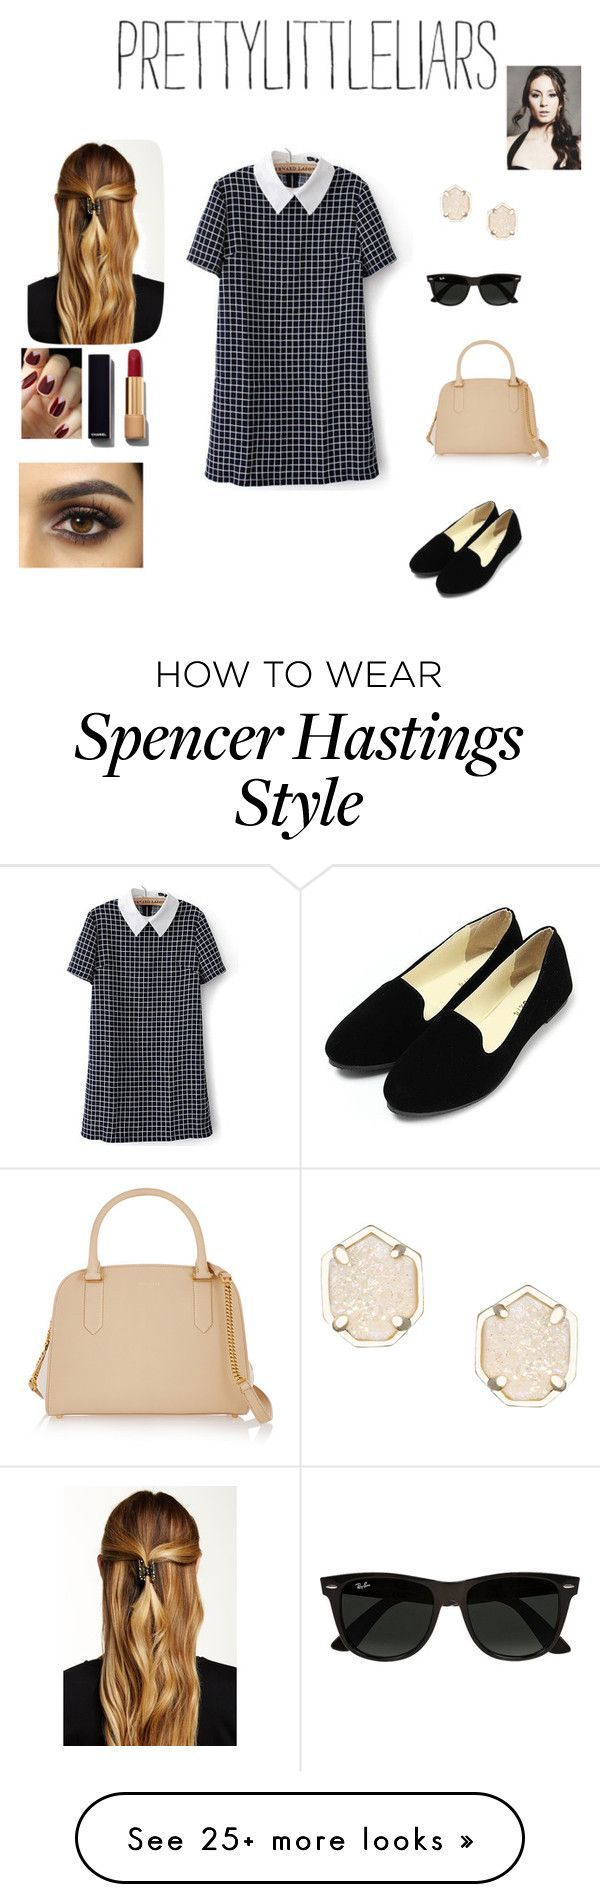 Spencer Hastings by annieb0bannie on Polyvore featuring Kendra Scott, Nina Ricci, Ray-Ban, Natasha Accessories, Chanel, dress, pll, CelebrityStyle and TroianBellisario